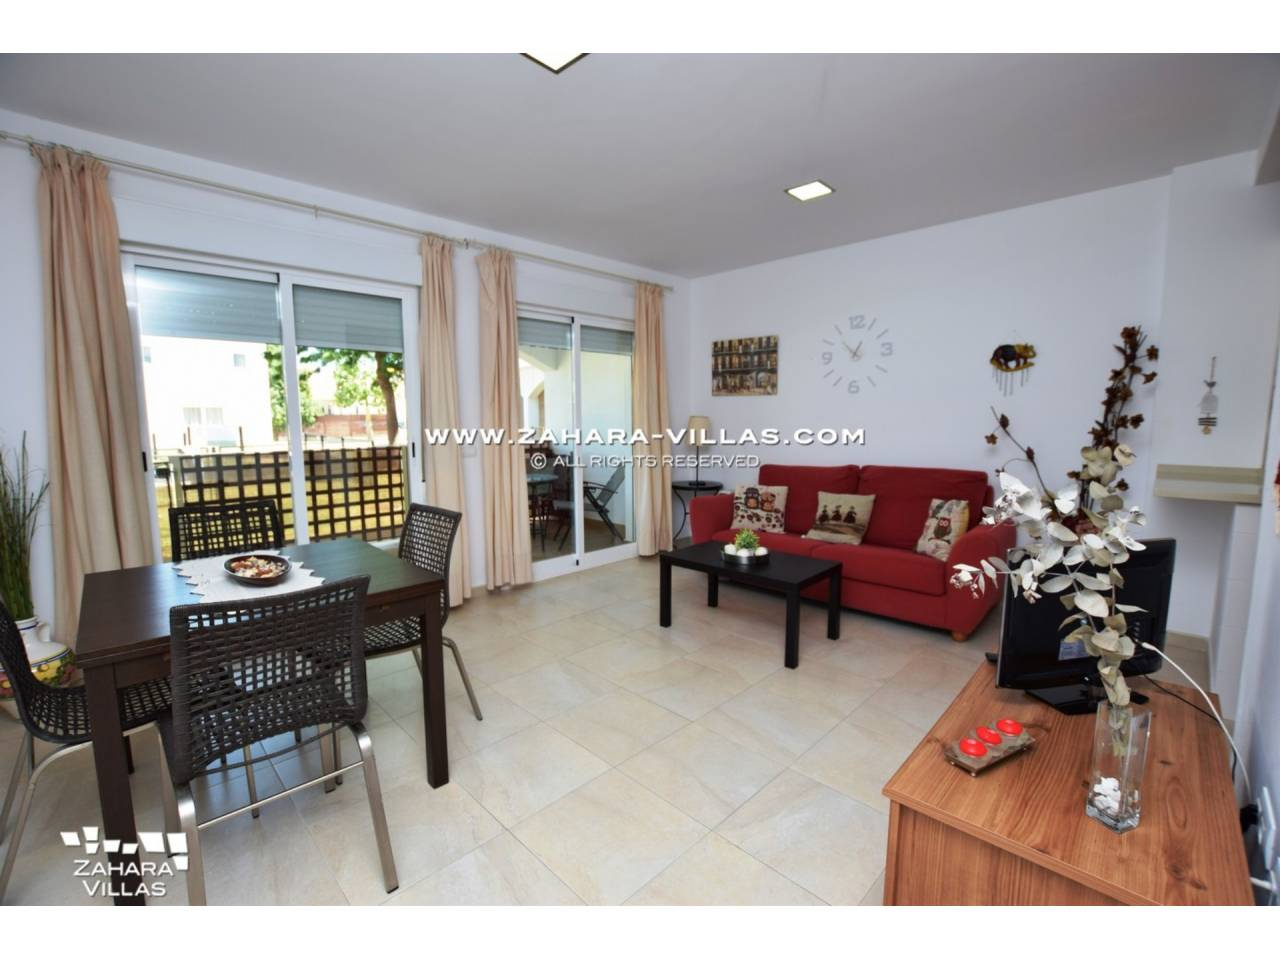 Imagen 3 de Apartment for sale in Costa de la Luz